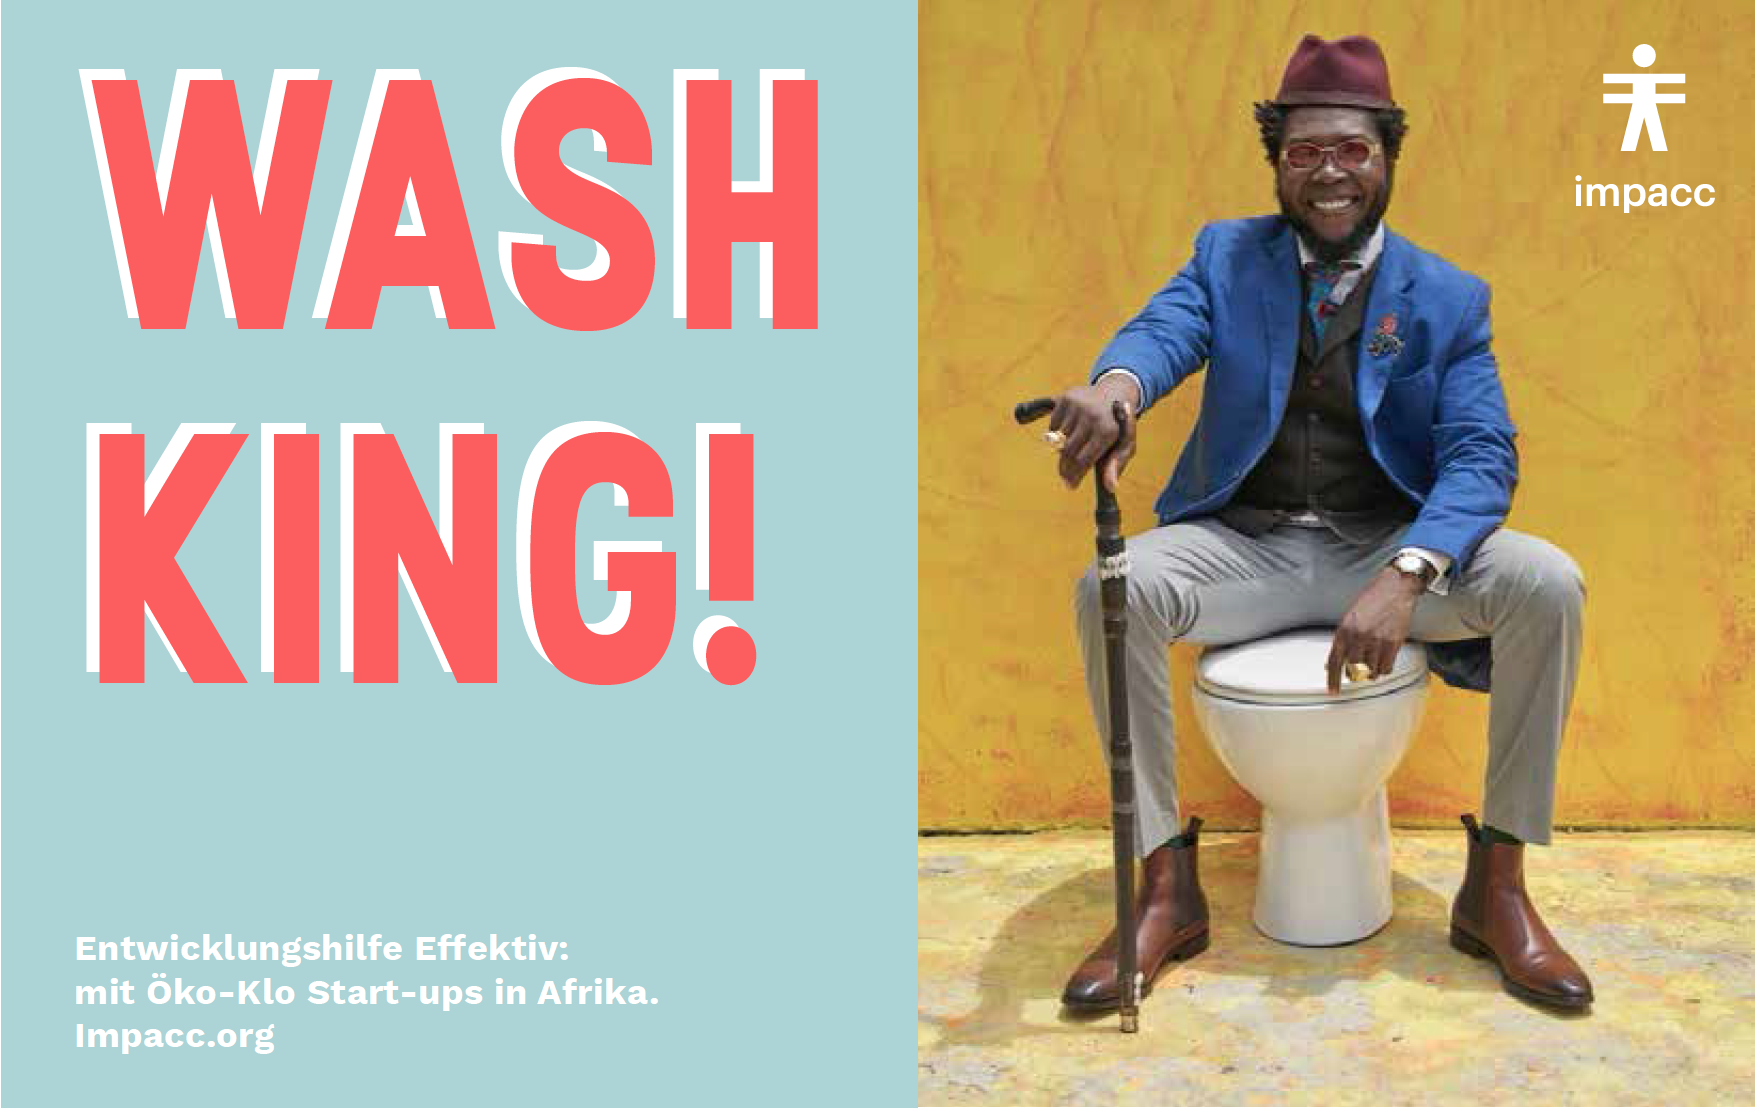 Impacc advertising image of a man sitting on a closed toilet